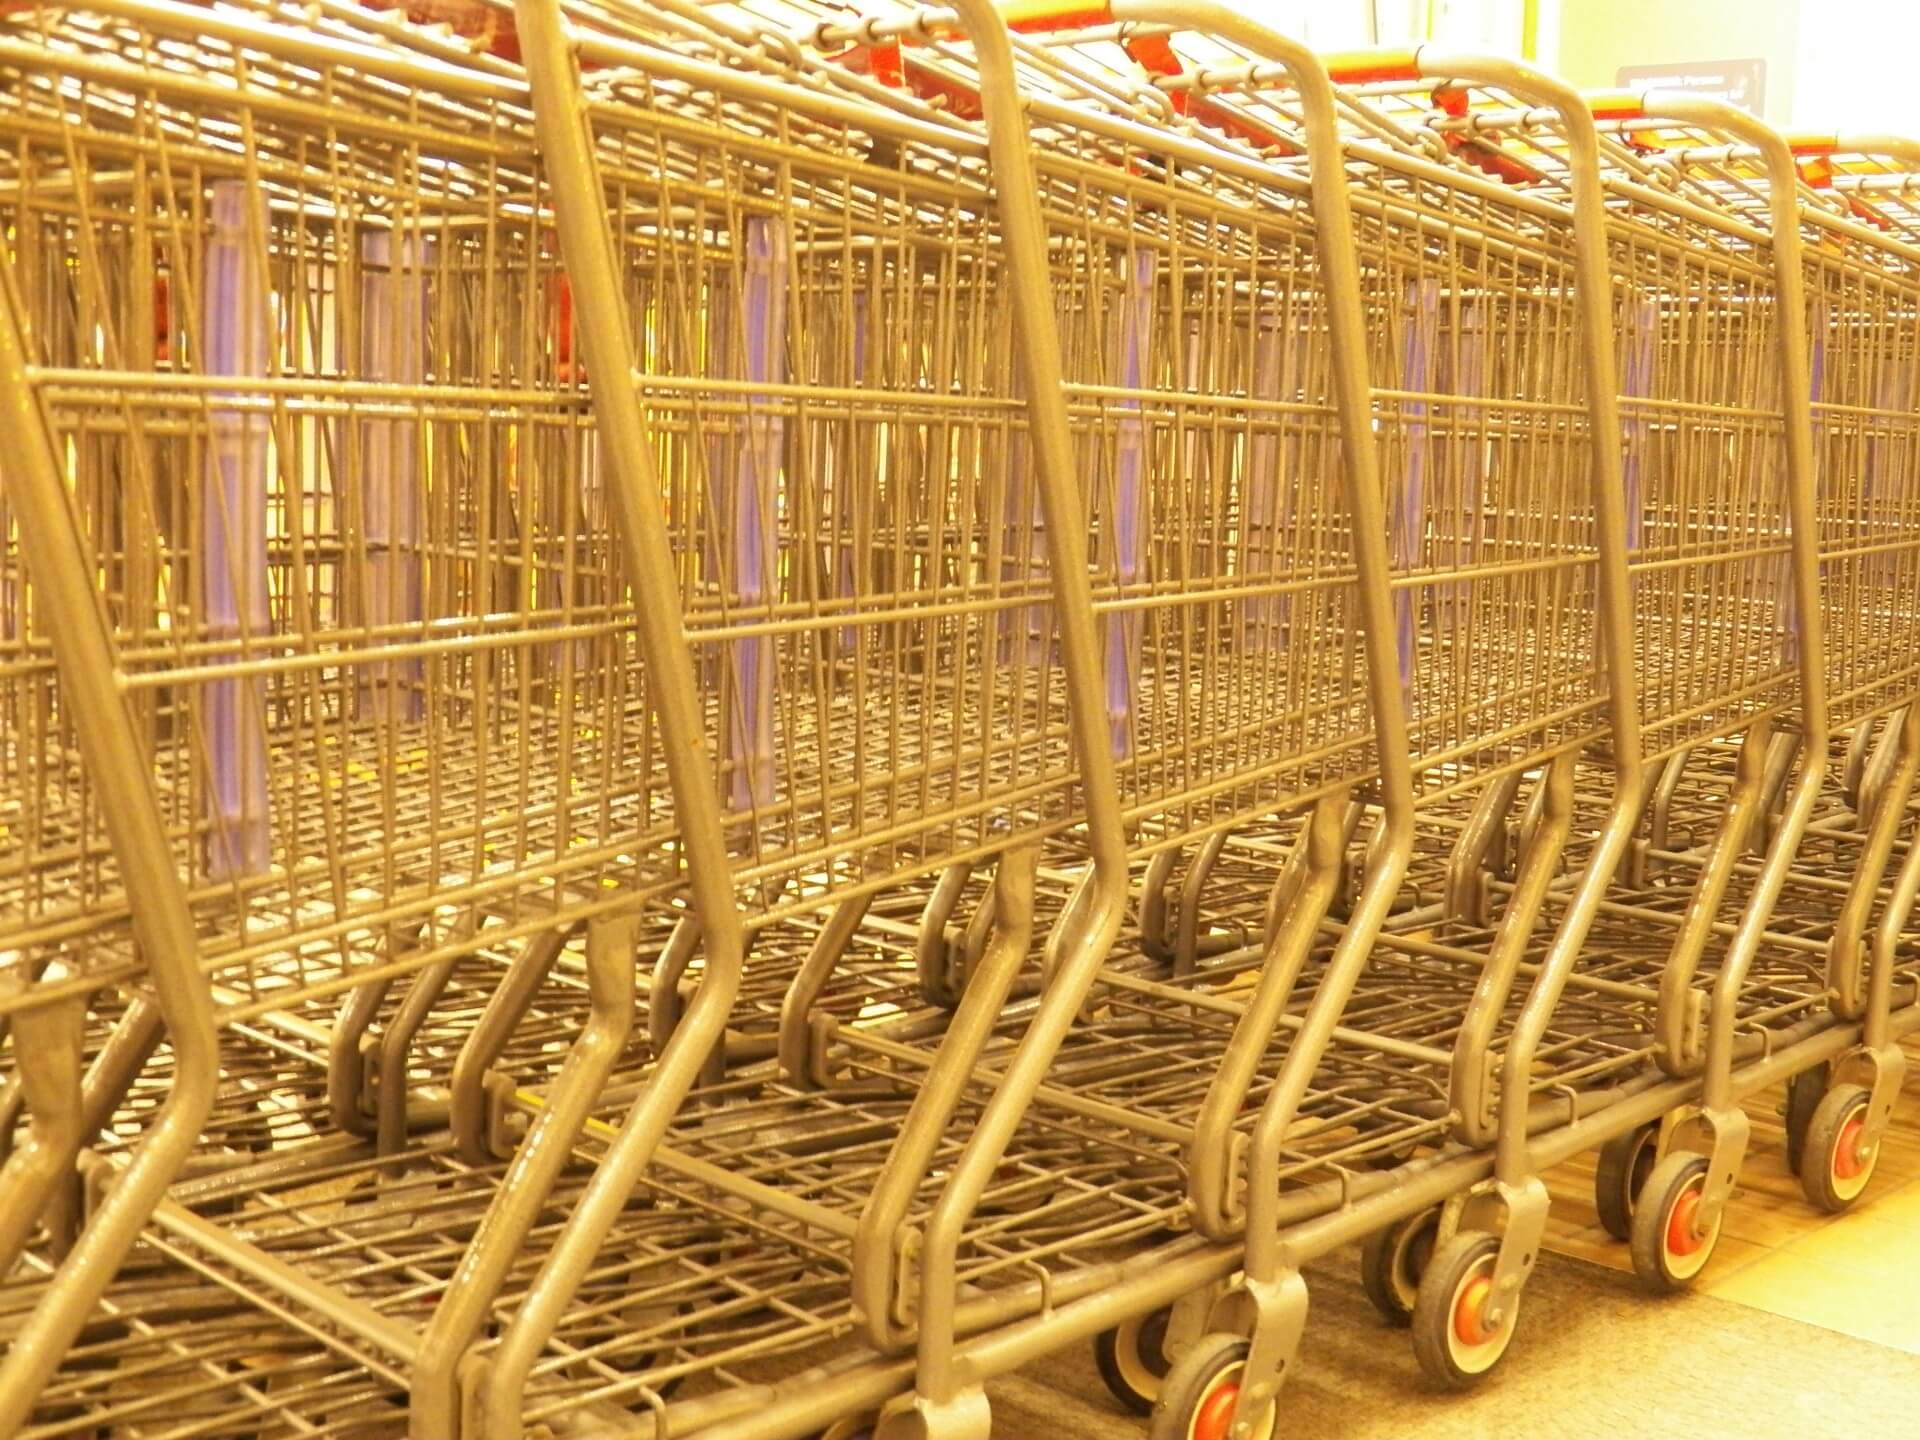 Simple Tips for Navigating the Grocery Store